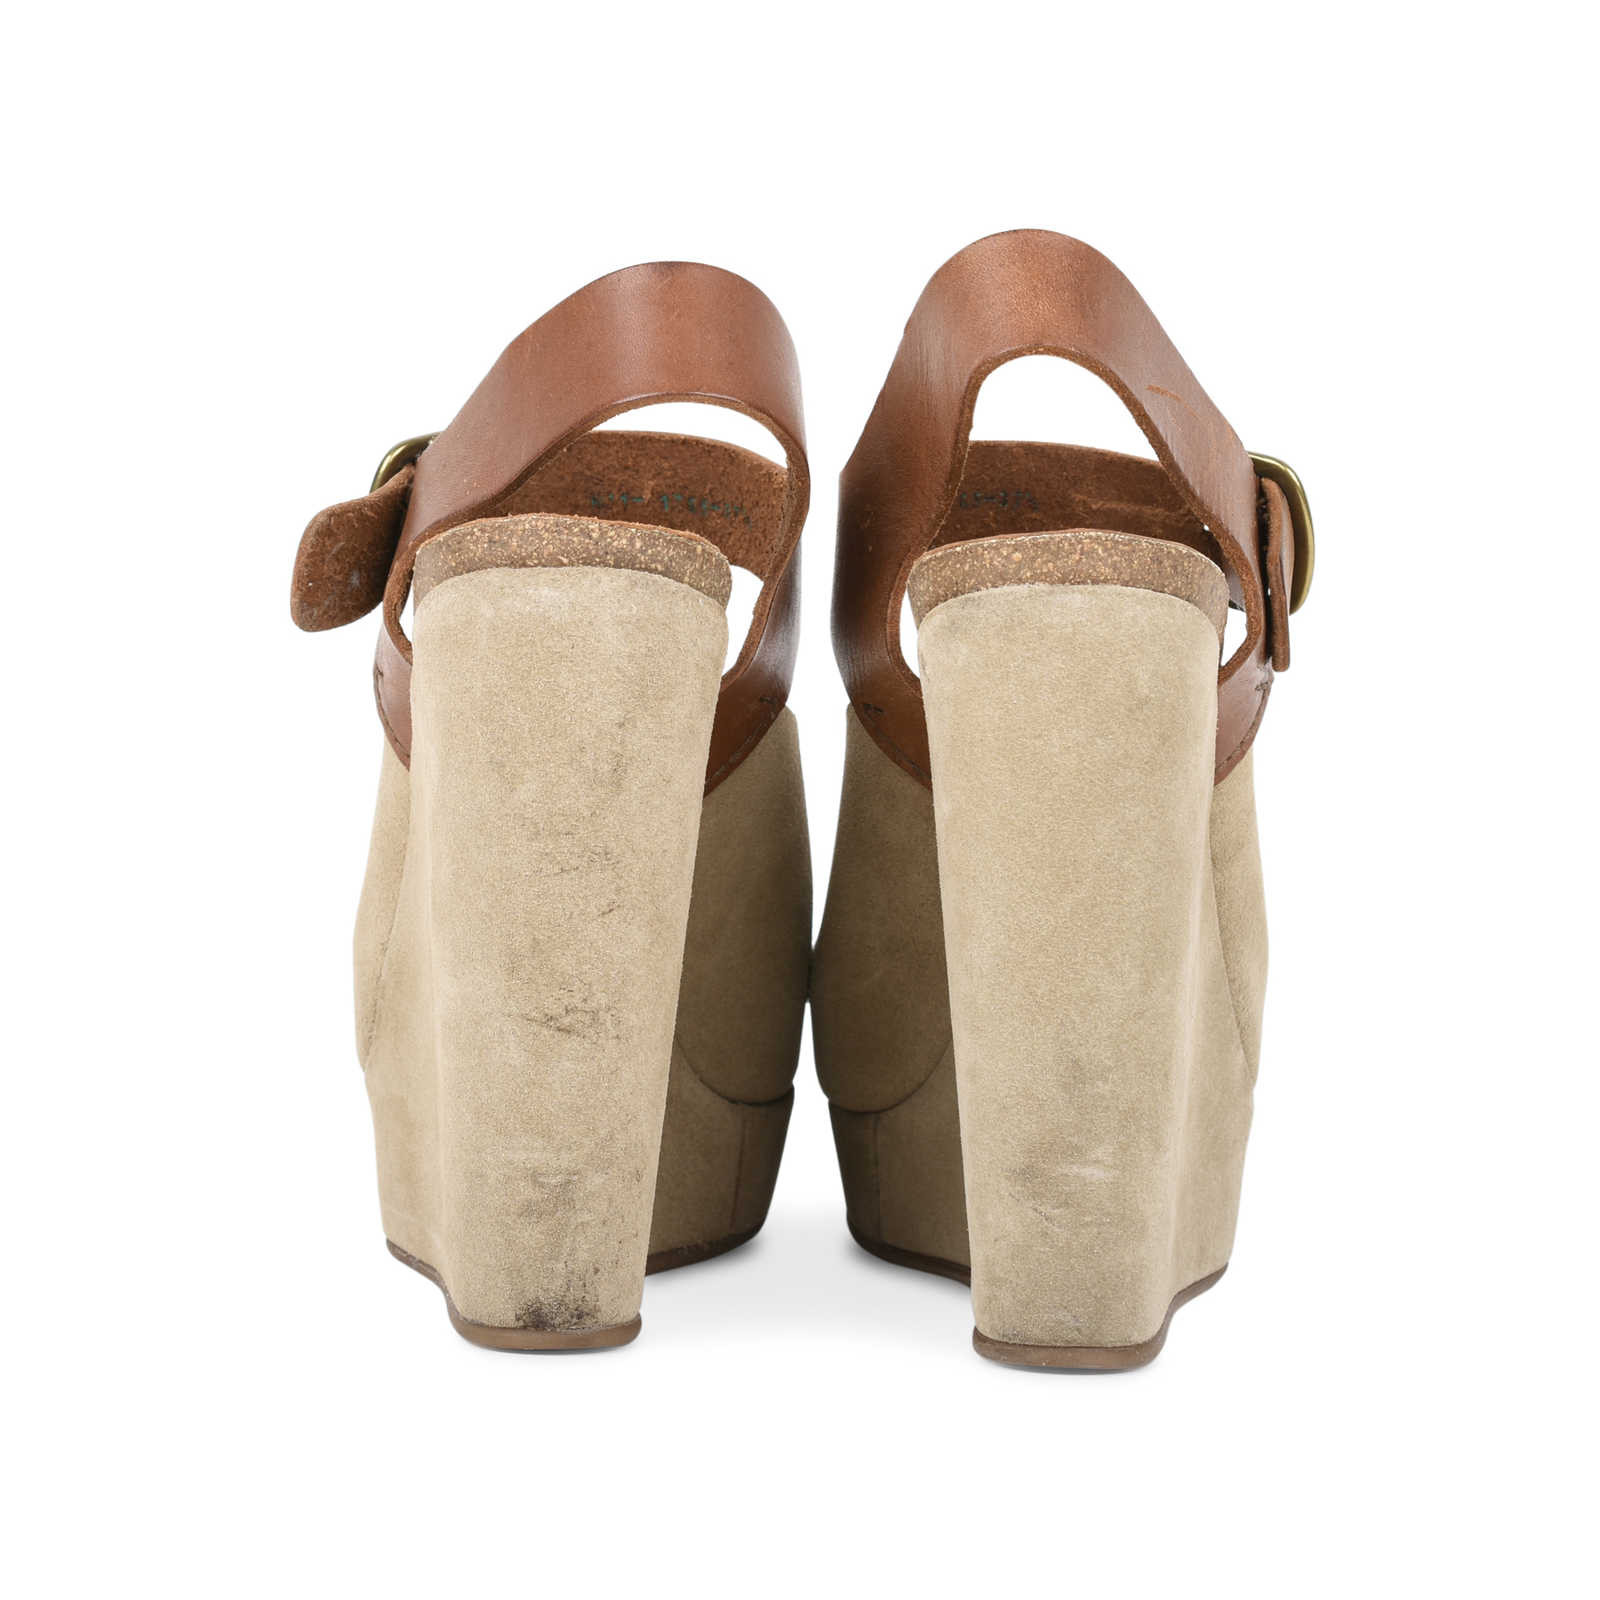 a3a7a3f302d2 ... Authentic Second Hand Pedro Garcia Wedge Sandals (PSS-498-00004) -  Thumbnail ...